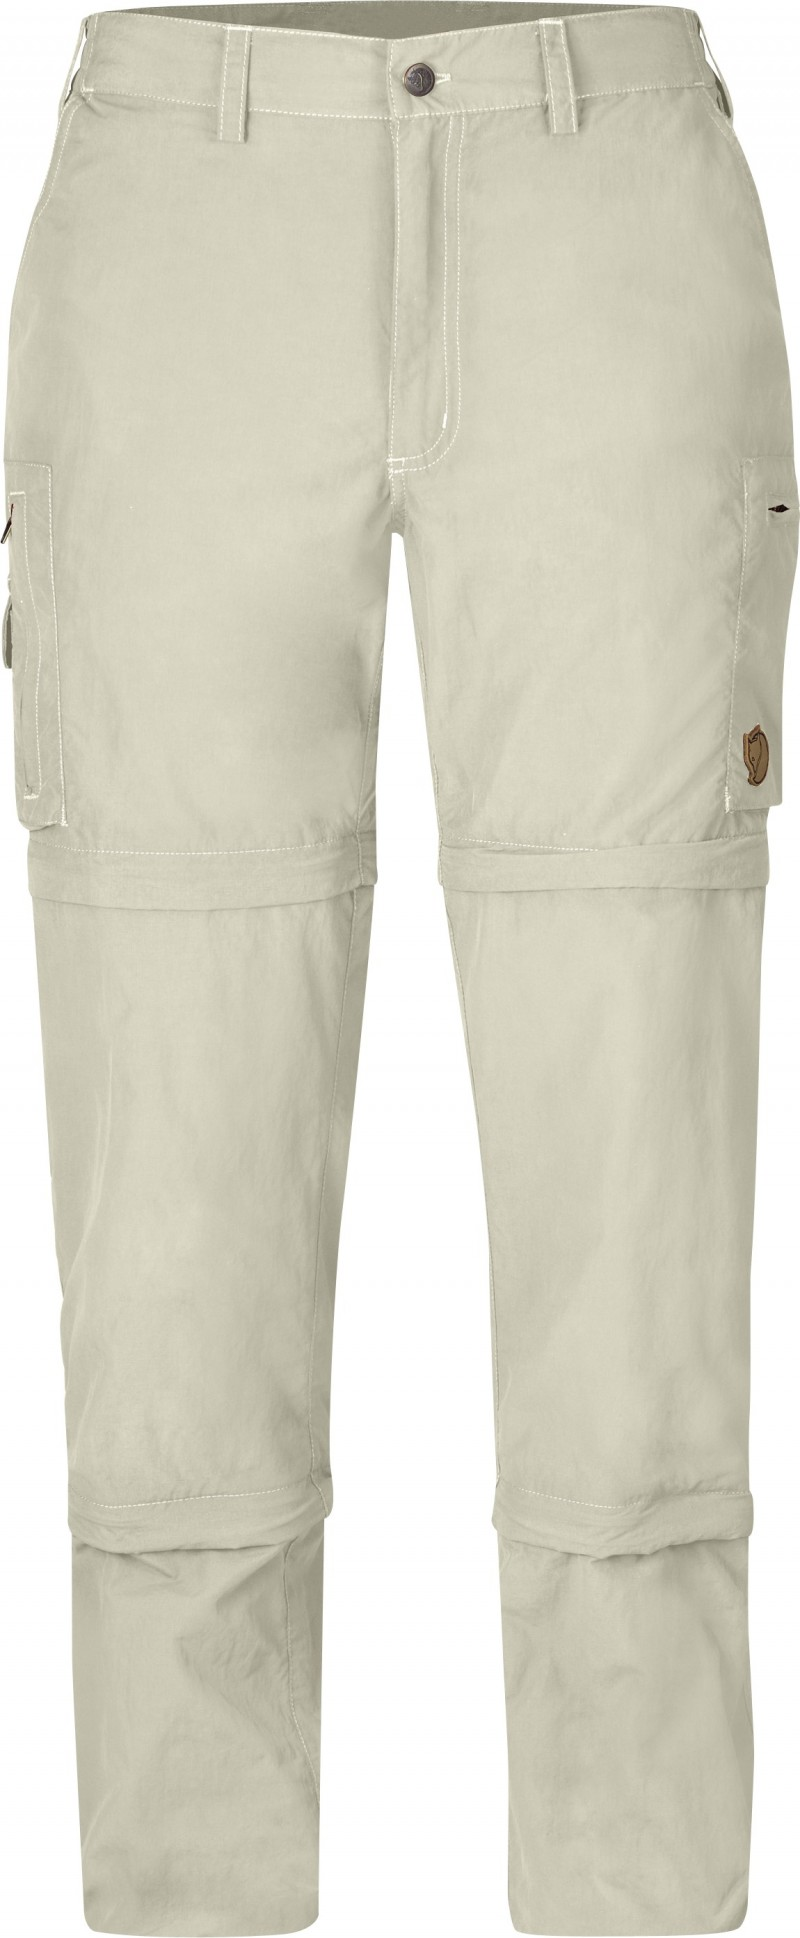 FjallRaven Sipora MT Trousers W. Light Beige-30